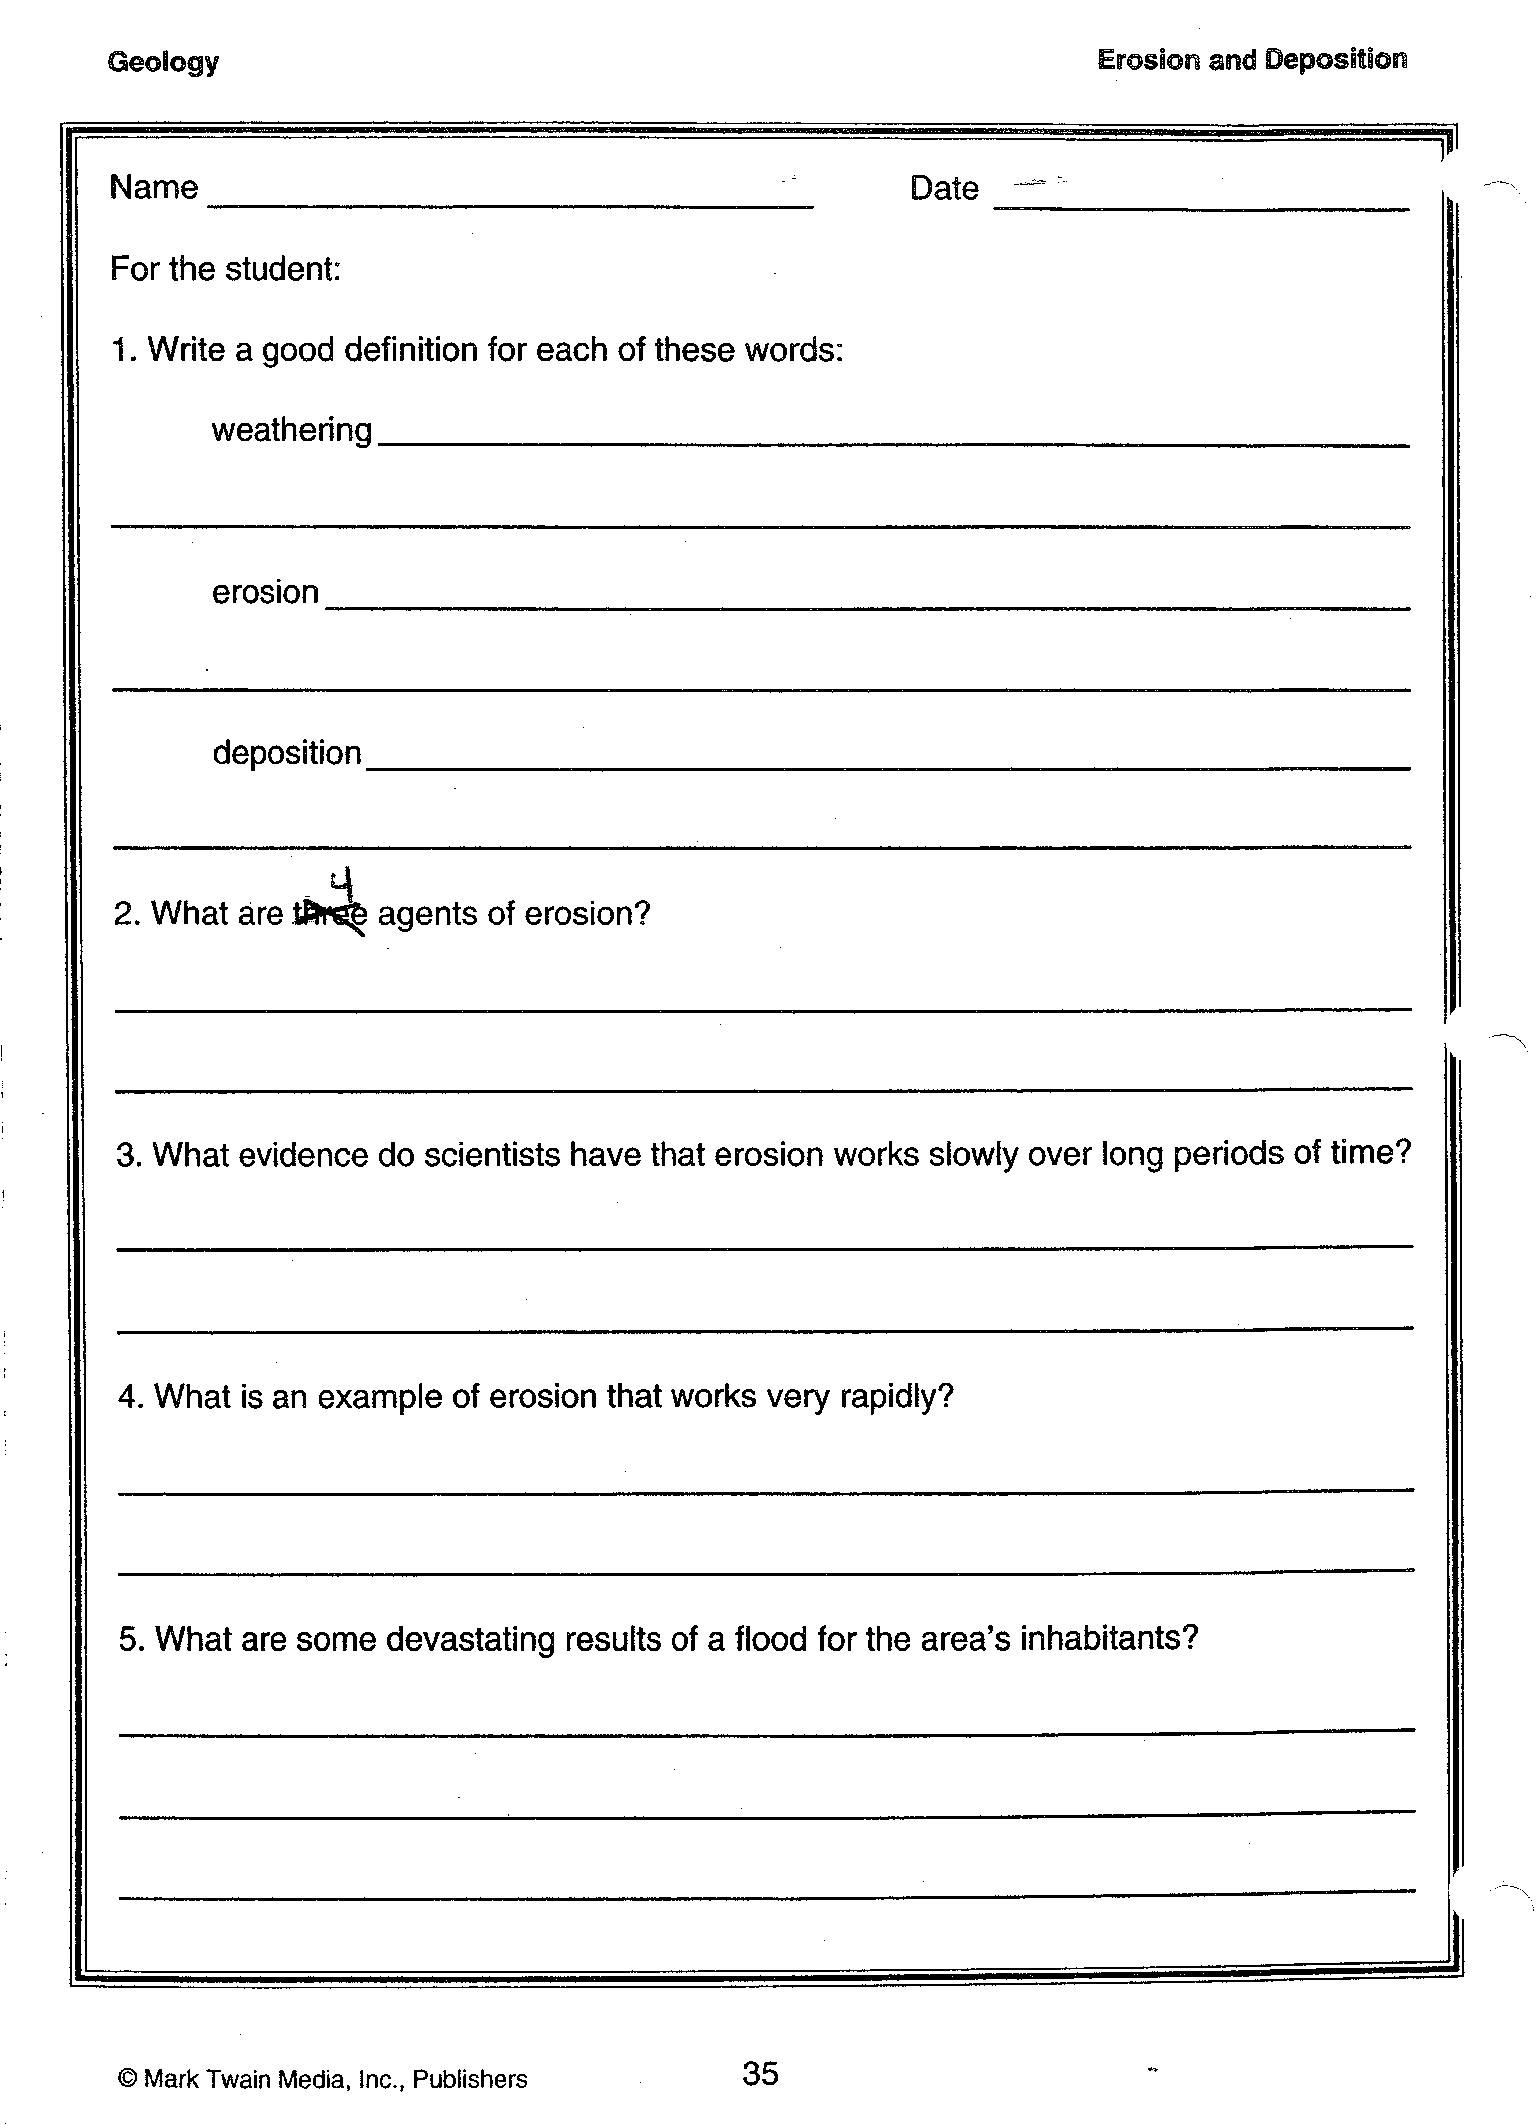 Middle School Science Worksheets Pdf Erosion and Deposition Definitions 001 1536—2128